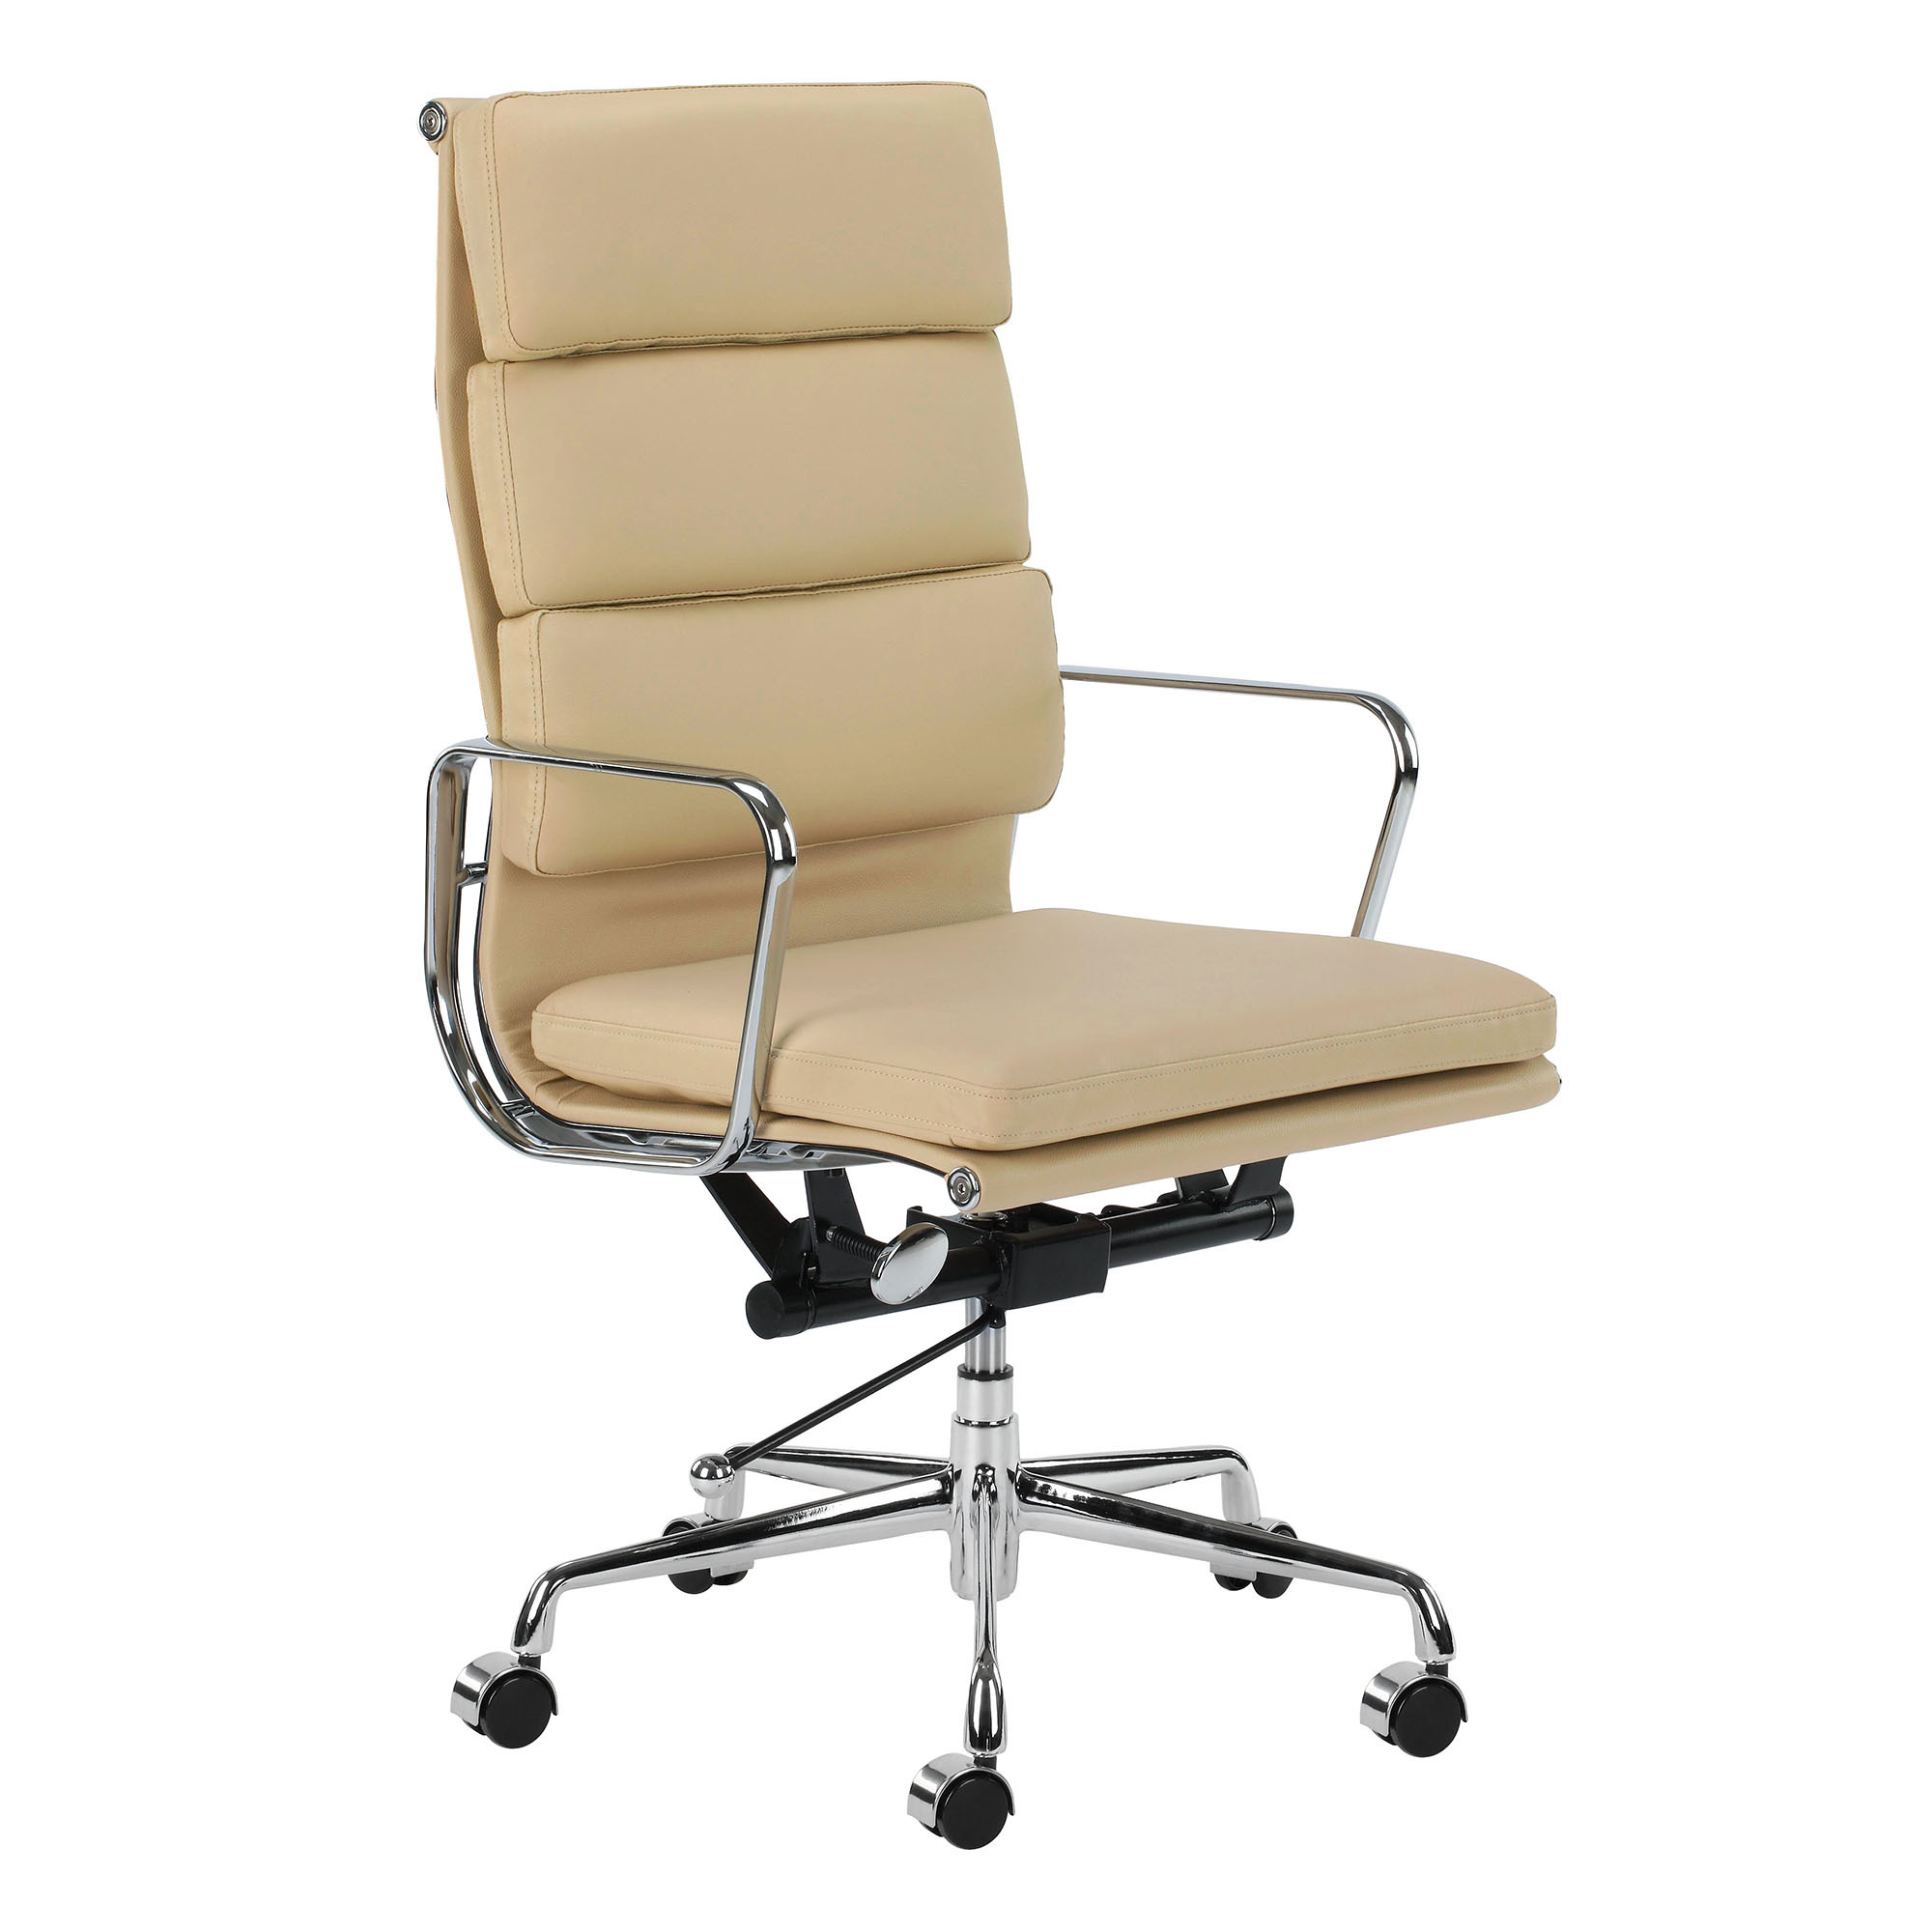 Eames Soft Pad Management Chair New Eames Premium Leather Replica High Back Soft Pad